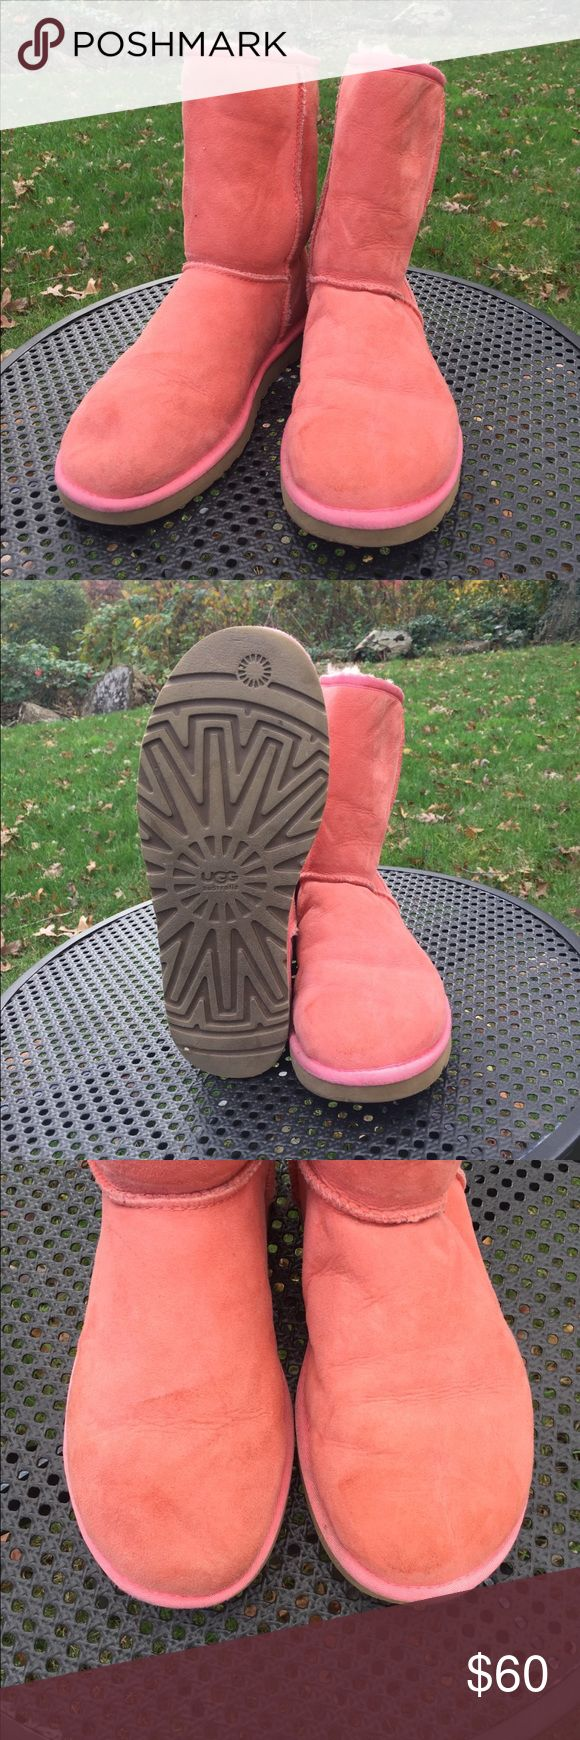 Bright and Warm Salmon Uggs These fun and bright salmon hugs will keep your feet cozy all winter long. The color makes them impossible to miss and you'll surely get tons of compliments on the unique hue. Size women's 9 but could fit 9, 9.5, and 10. Soles are in excellent condition and surface area of shoes have slight discoloration near the top as shown in pictures. I believe ugg or leather cleaner should be able to clear this up. But wear will be factored into price. Fold over, or tuck…